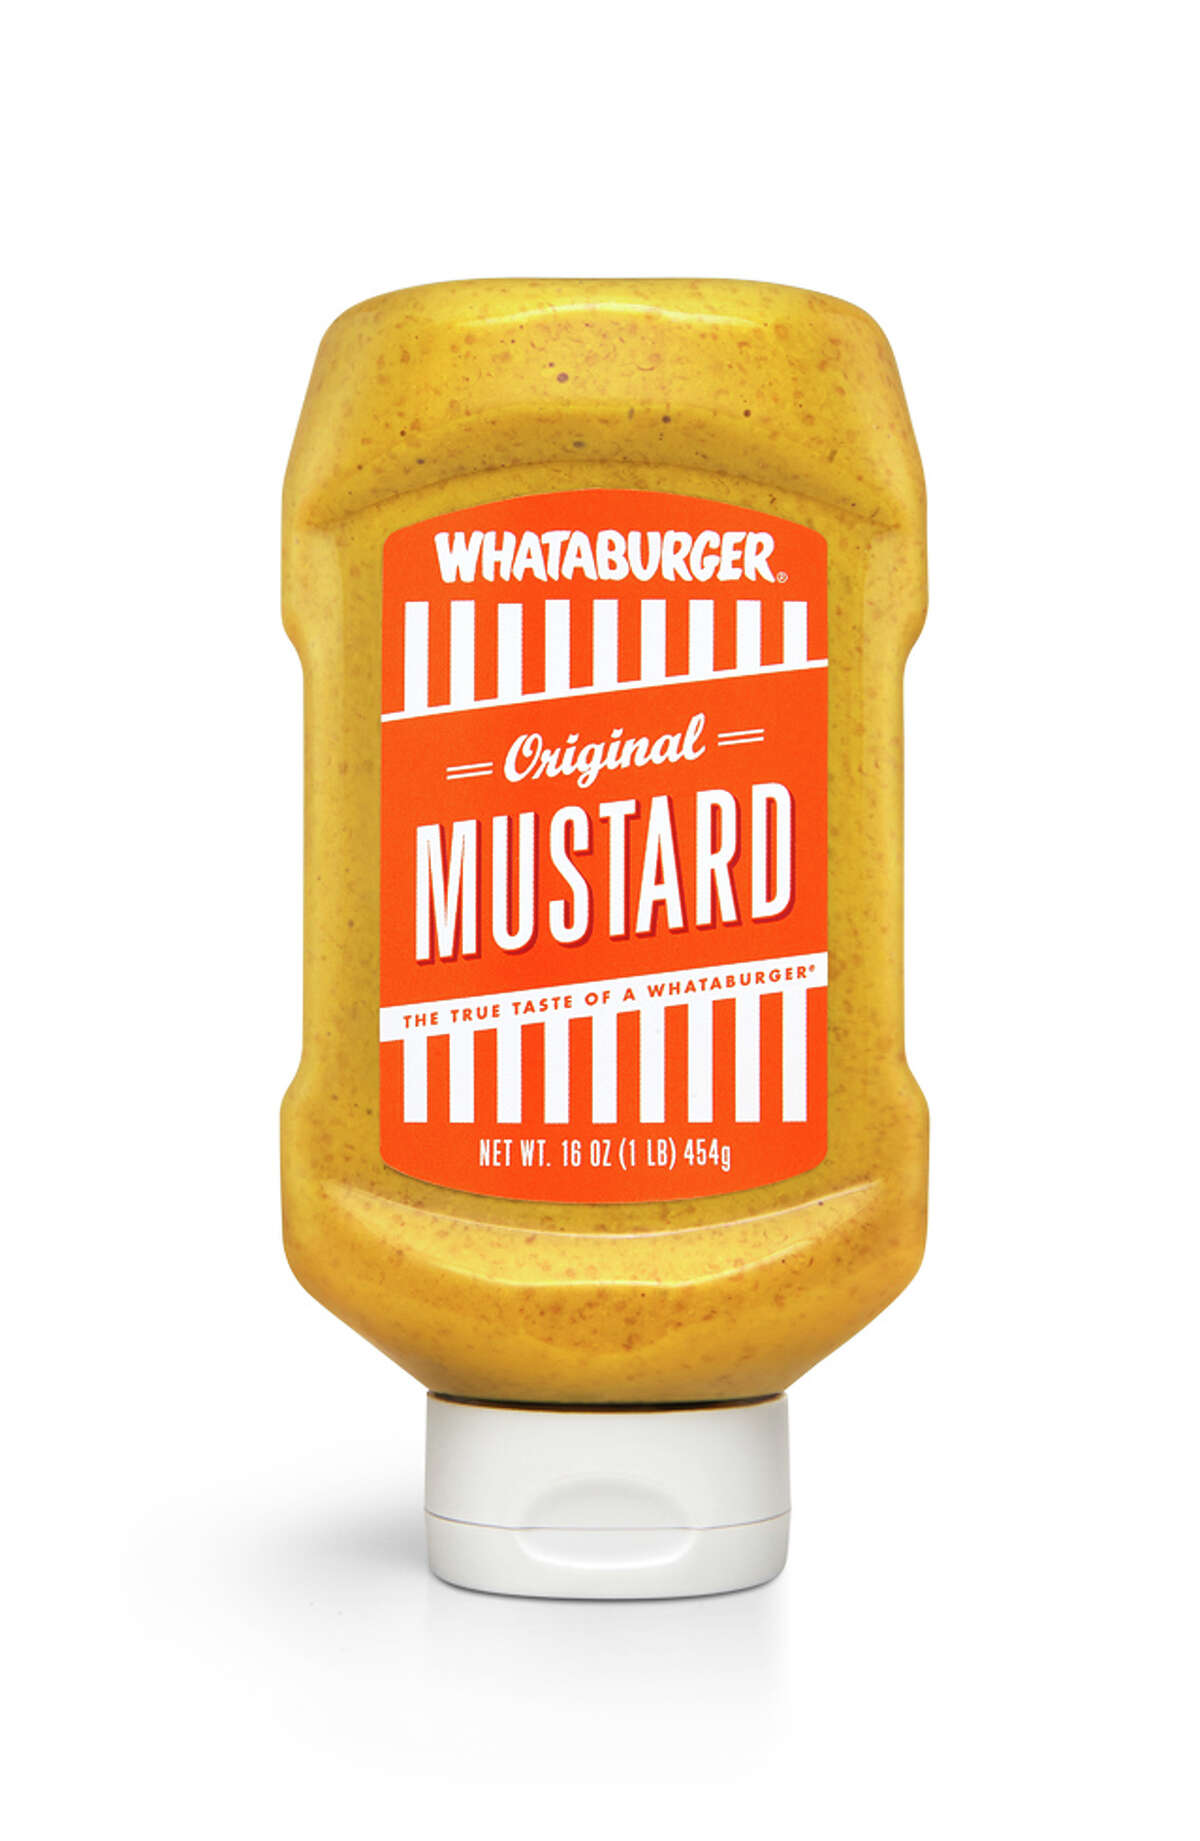 Whataburger will launch into retail sales for the first time by bottling its popular line of condiments Fancy Ketchup, Spicy Ketchup and Original Mustard making them available exclusively at all Texas and Mexico H-E-B stores this summer. Shows in the picture is Whataburger Original Mustard.